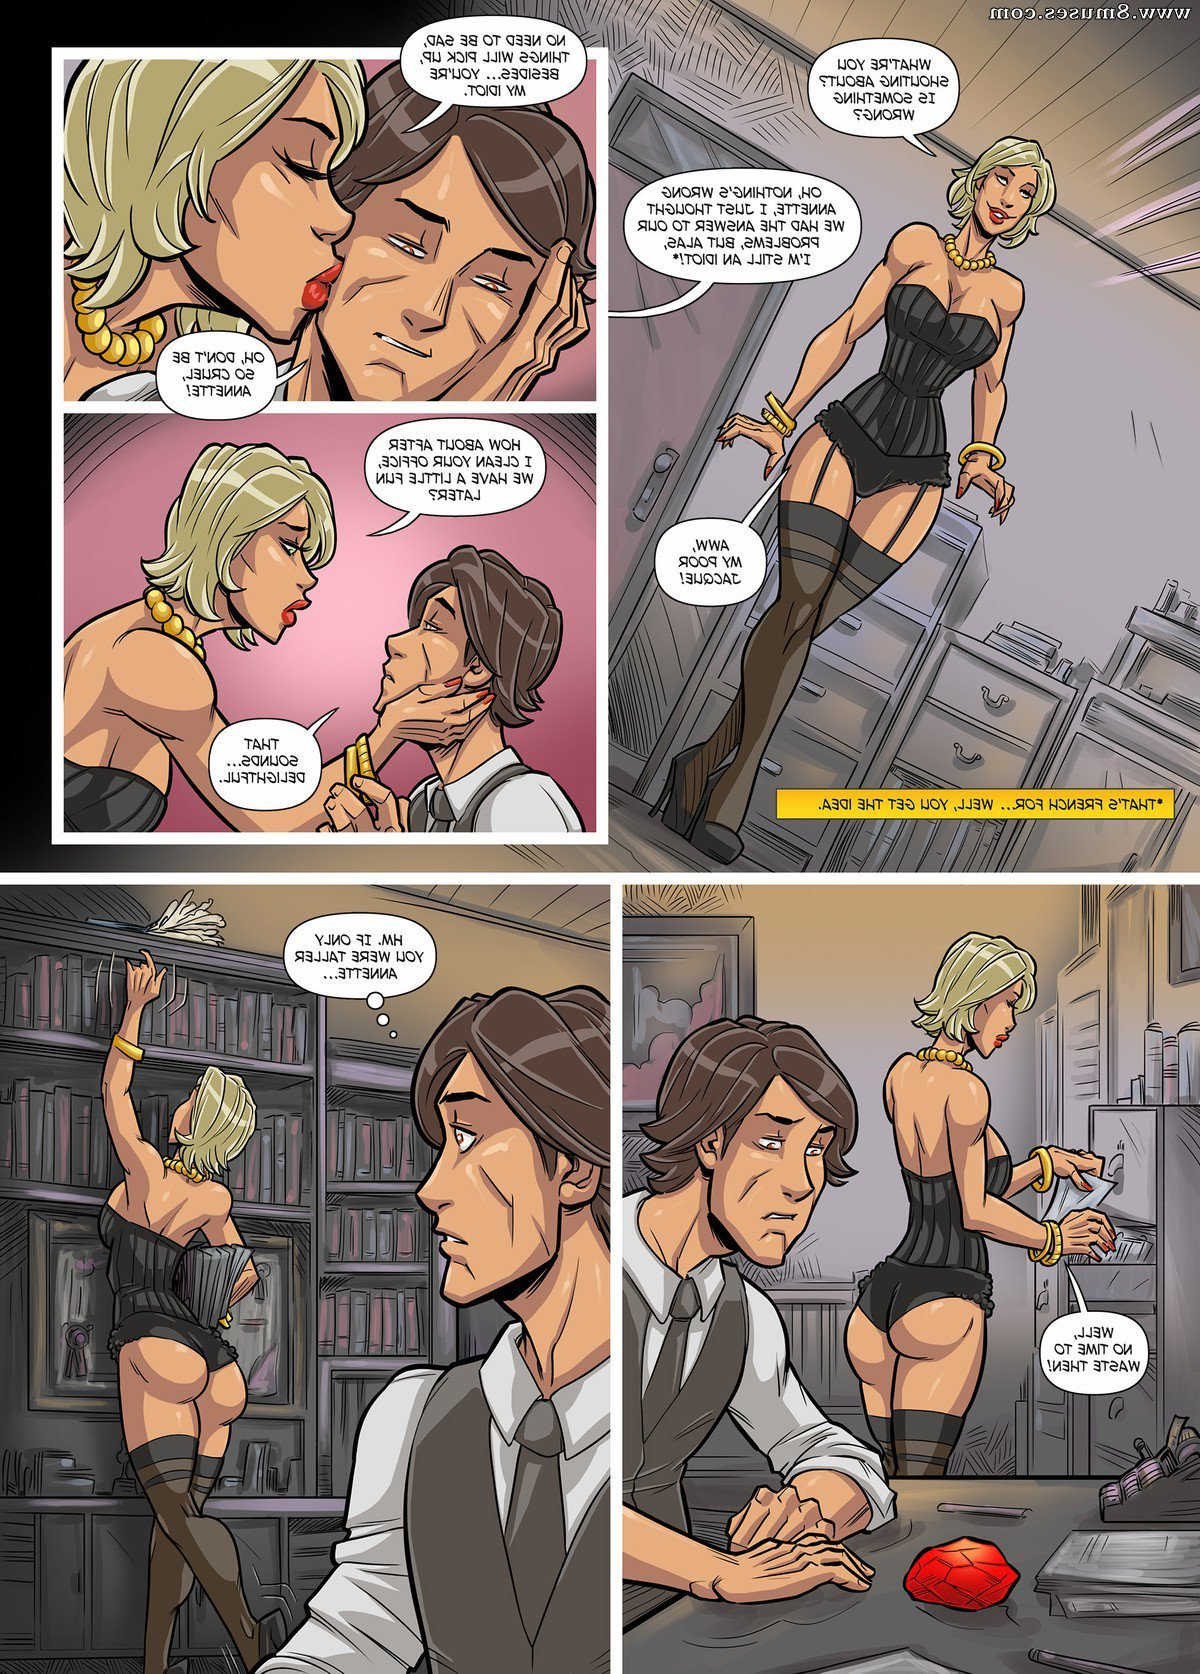 Expansionfan-Comics/The-Growing-Mistress/Issue-1 The_Growing_Mistress_-_Issue_1_6.jpg